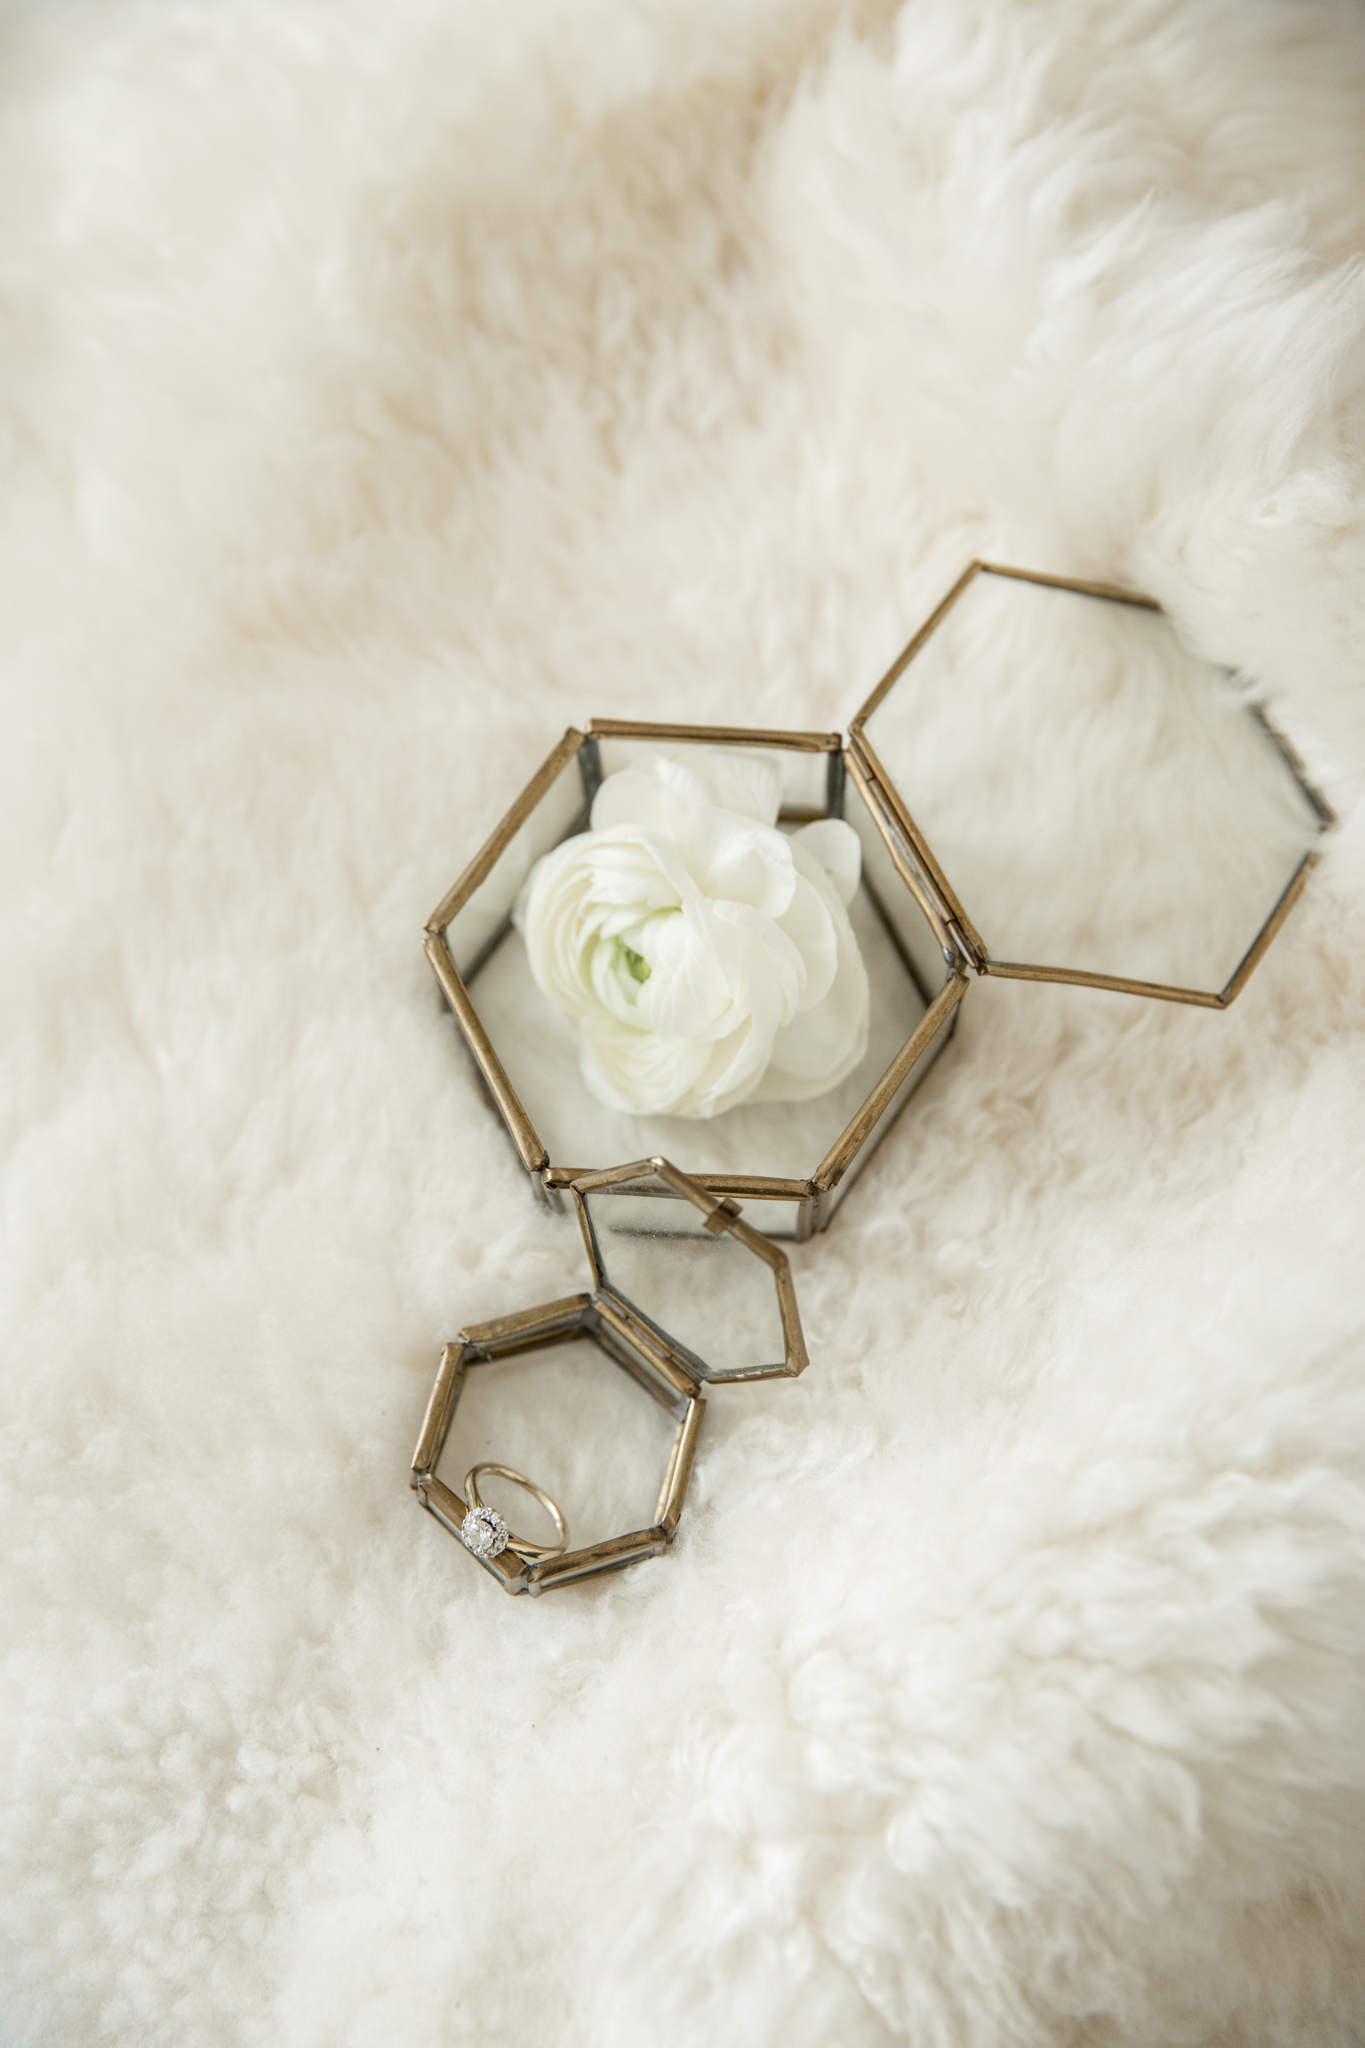 Faceted Jewelry boxes